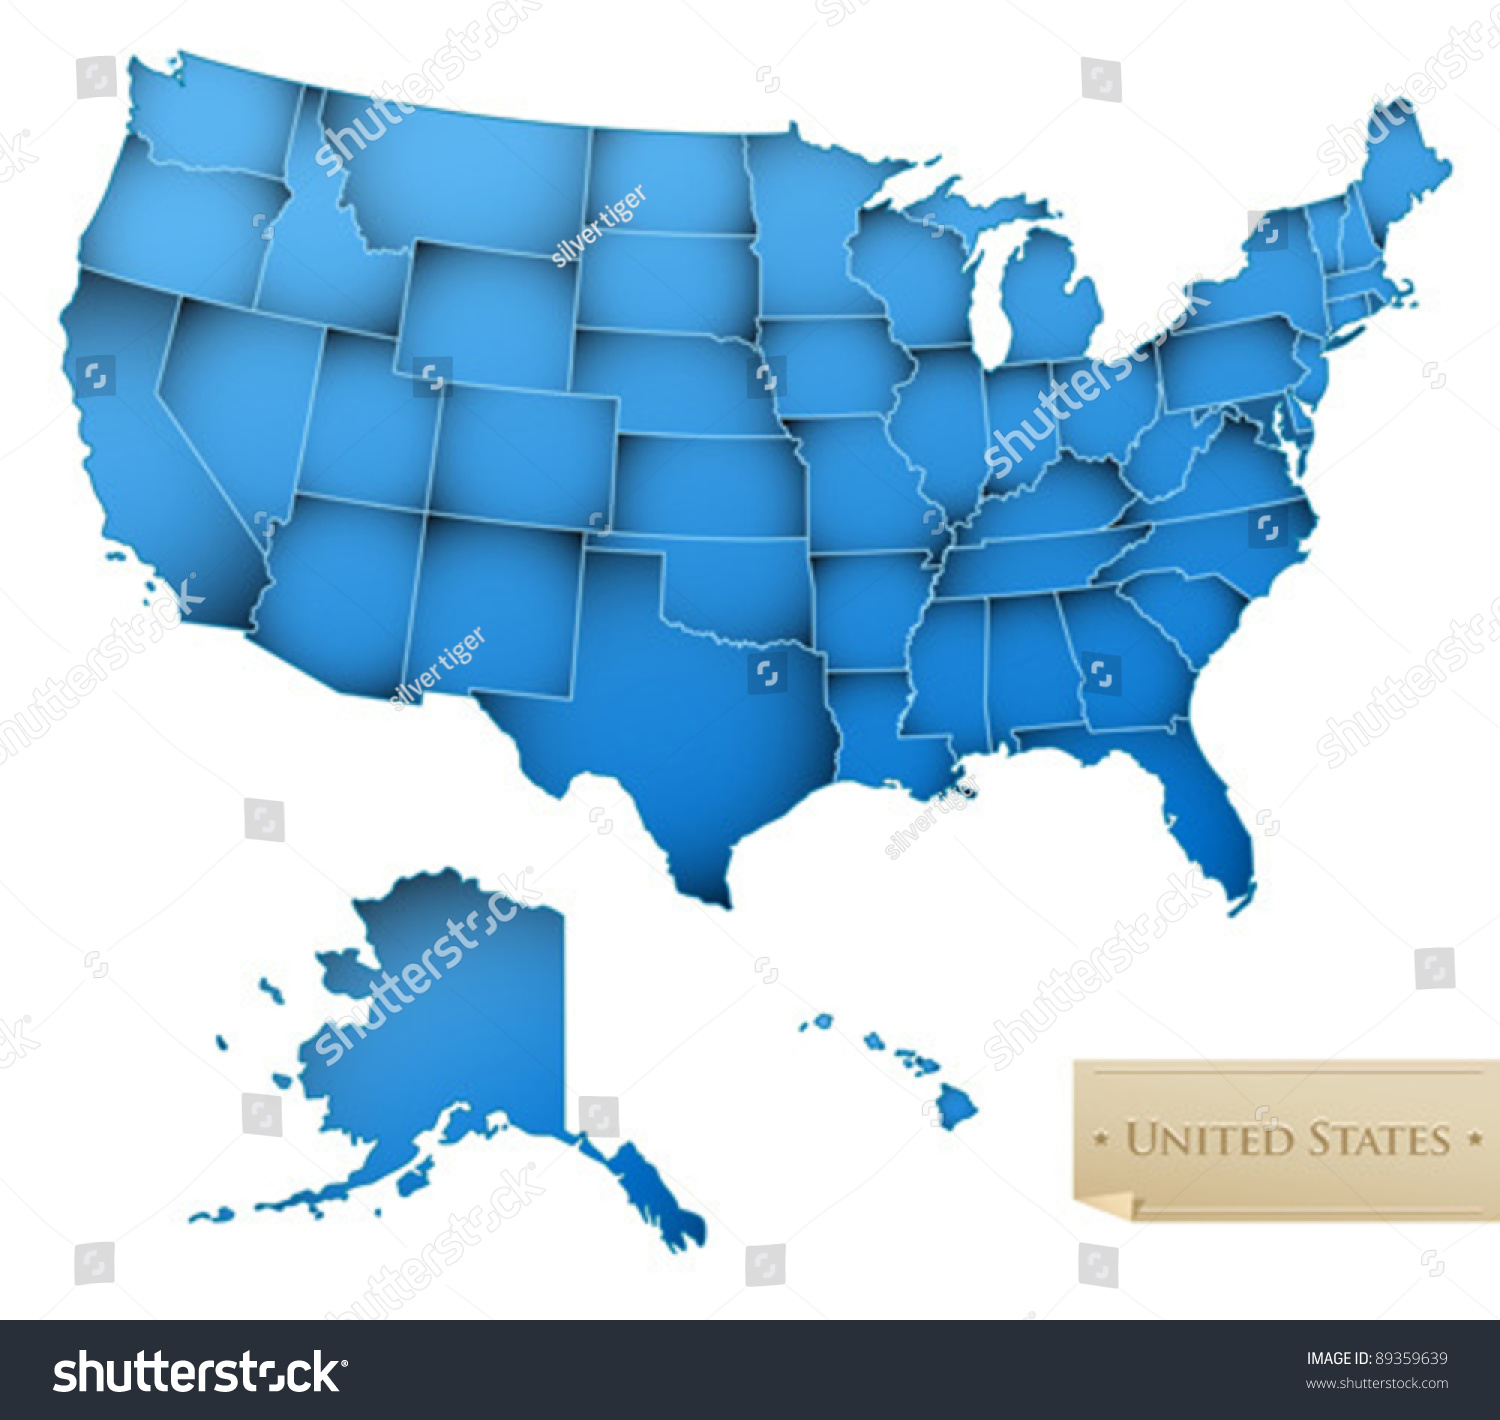 Usa Map United States America All Stock Vector Shutterstock - Map of all the states